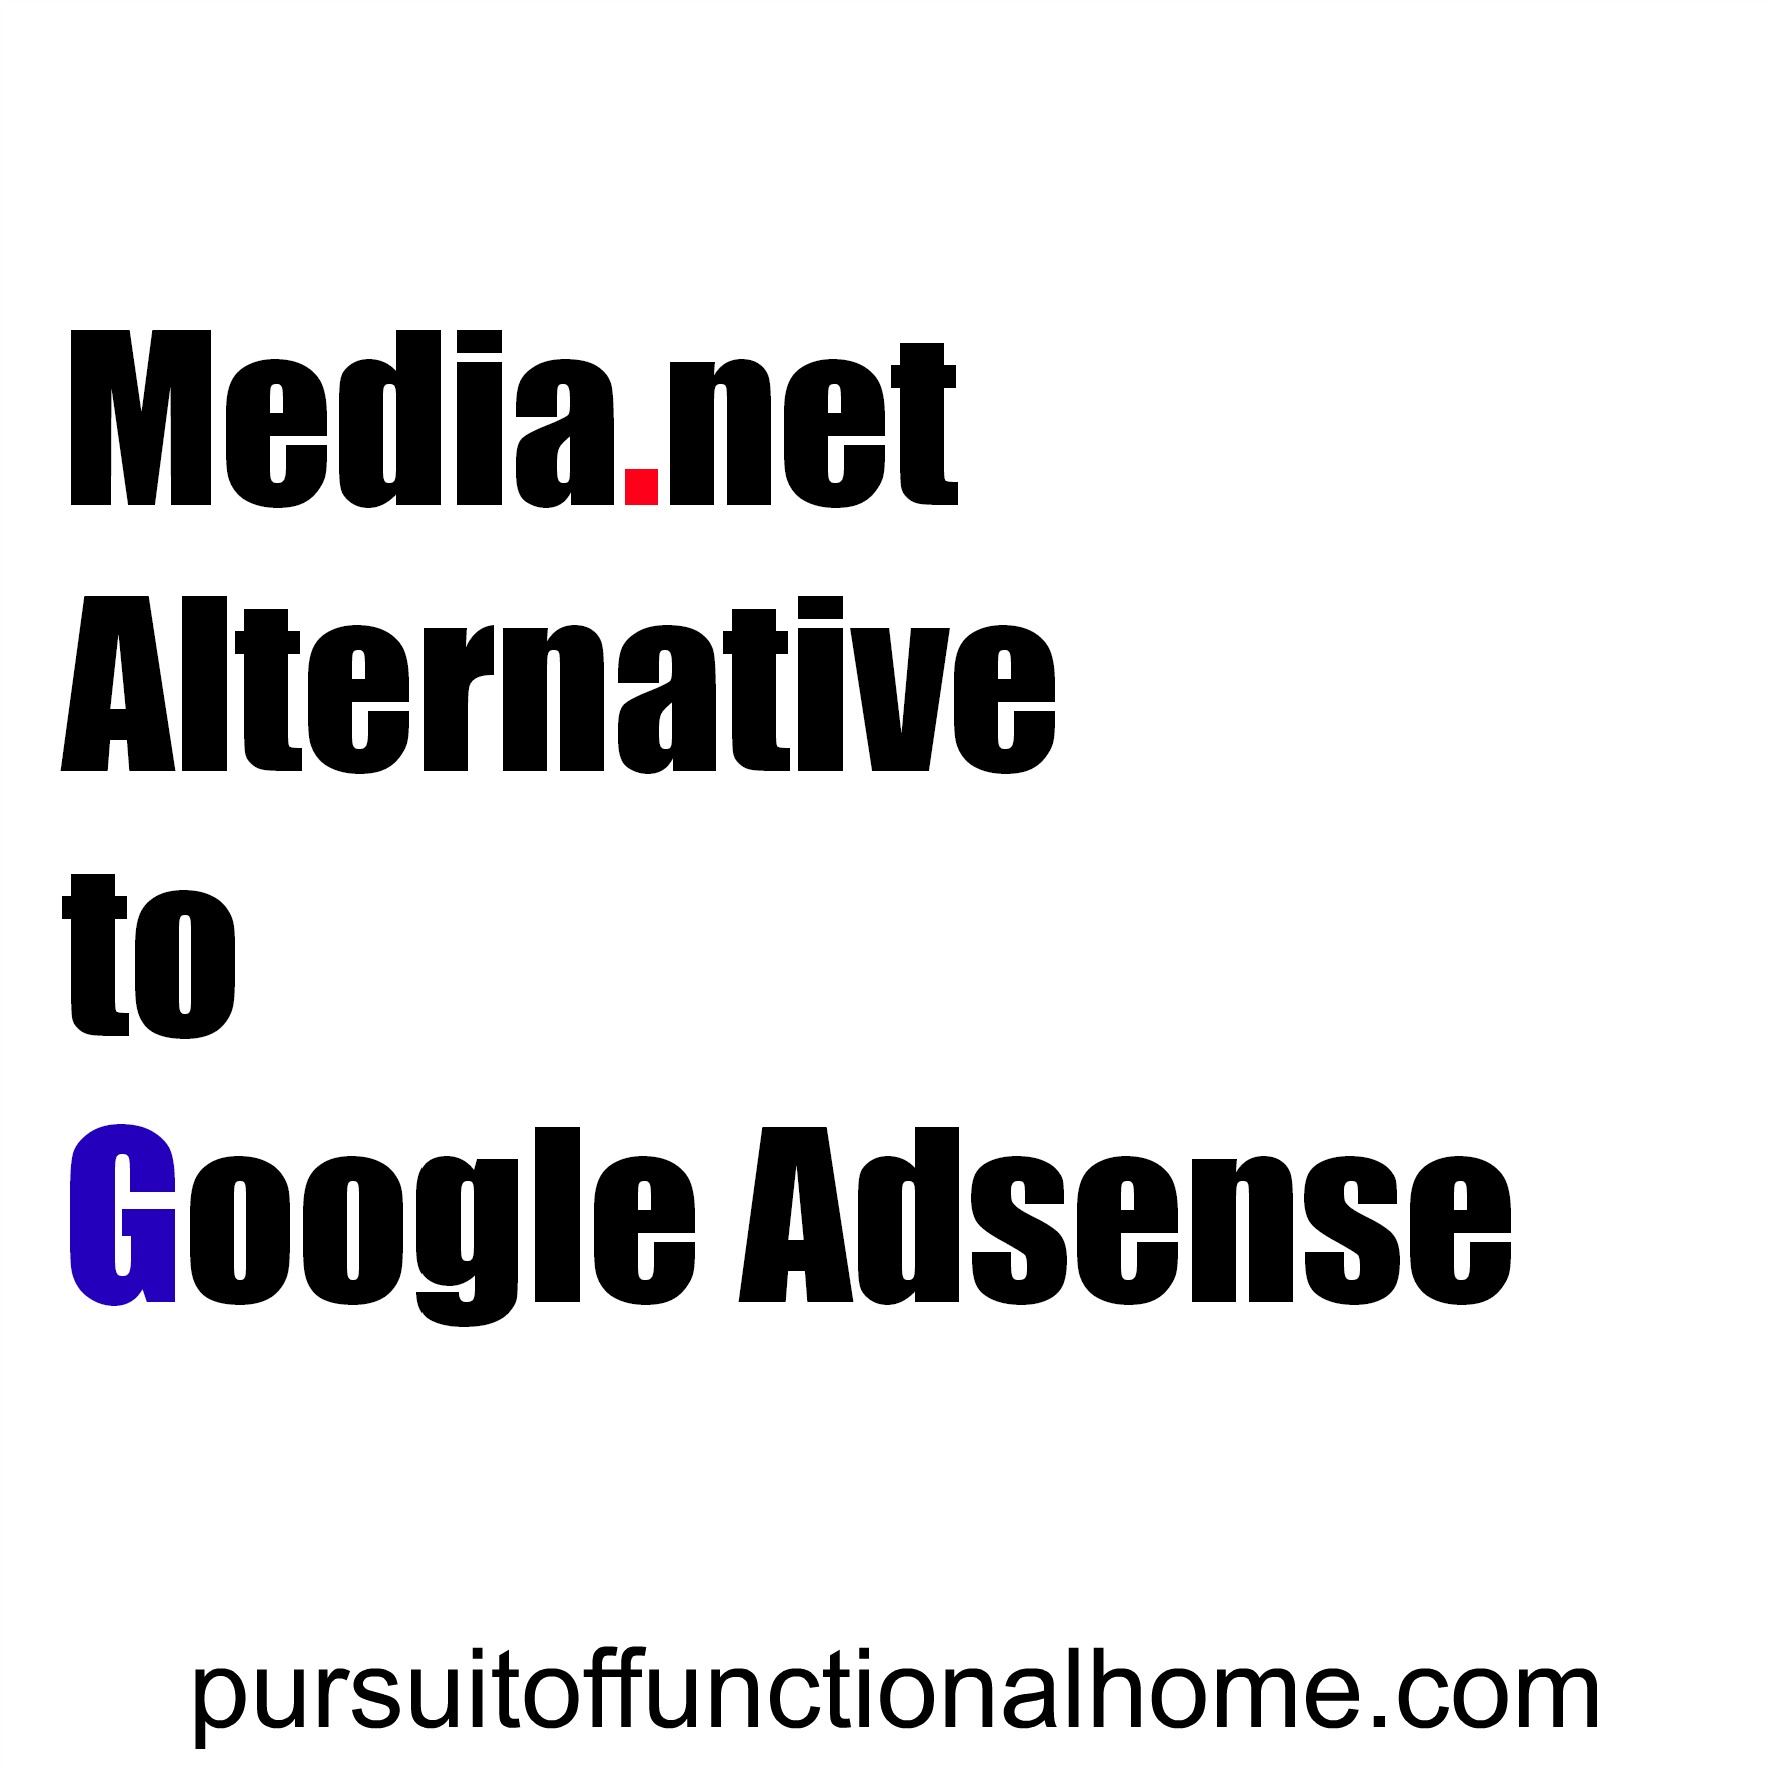 Media.net Alternative to Google Adsense